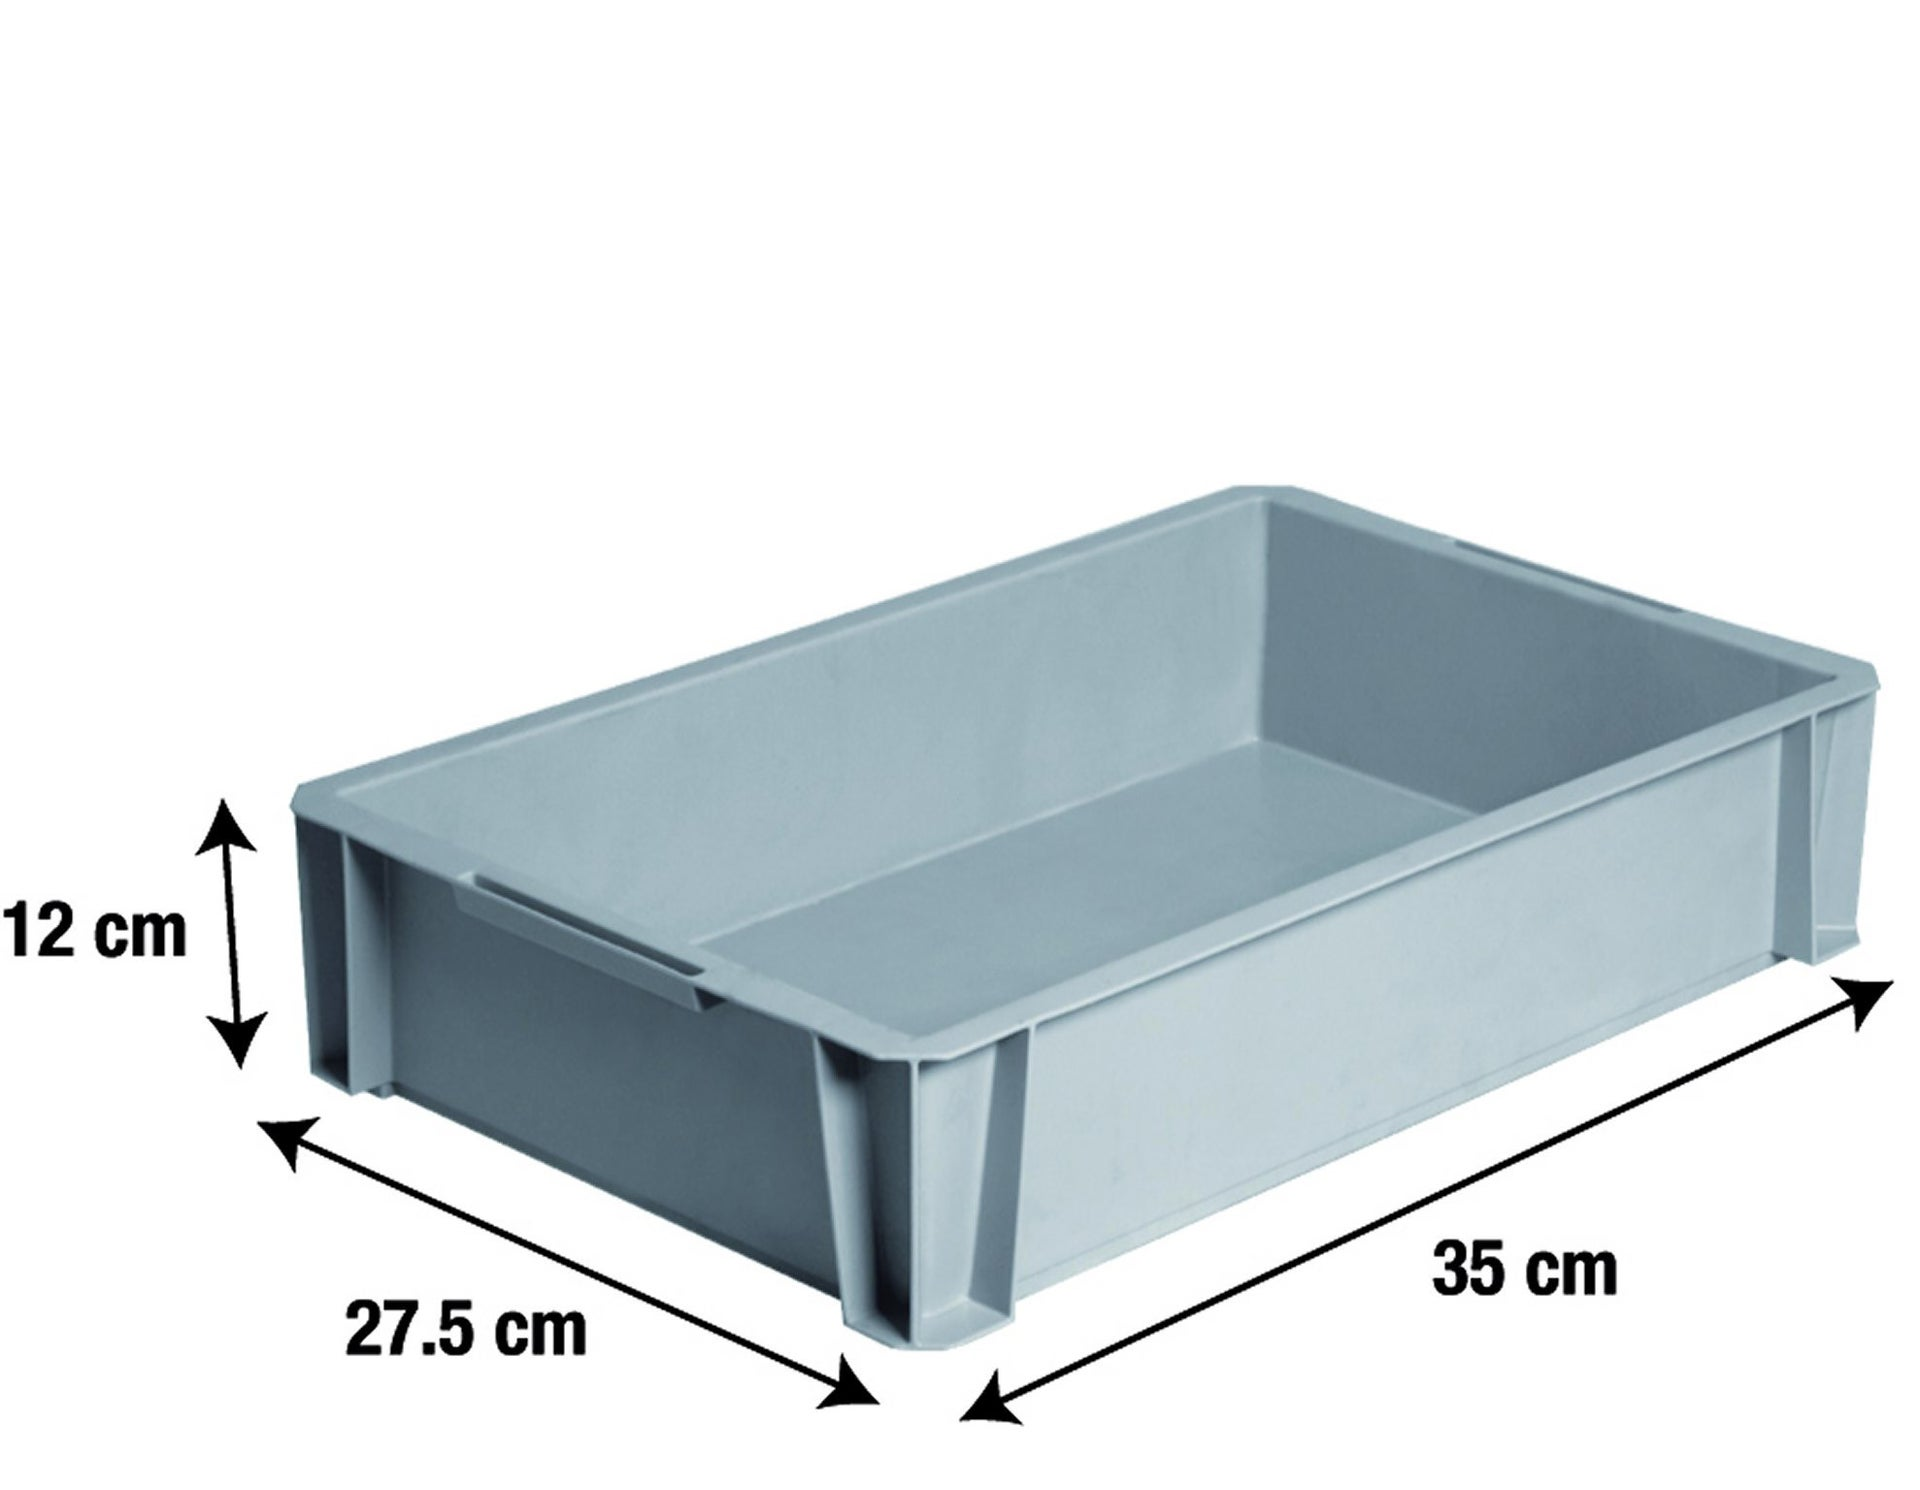 Bac De Manutention Stacking Box Plastique L35 X P275 X H12 Cm